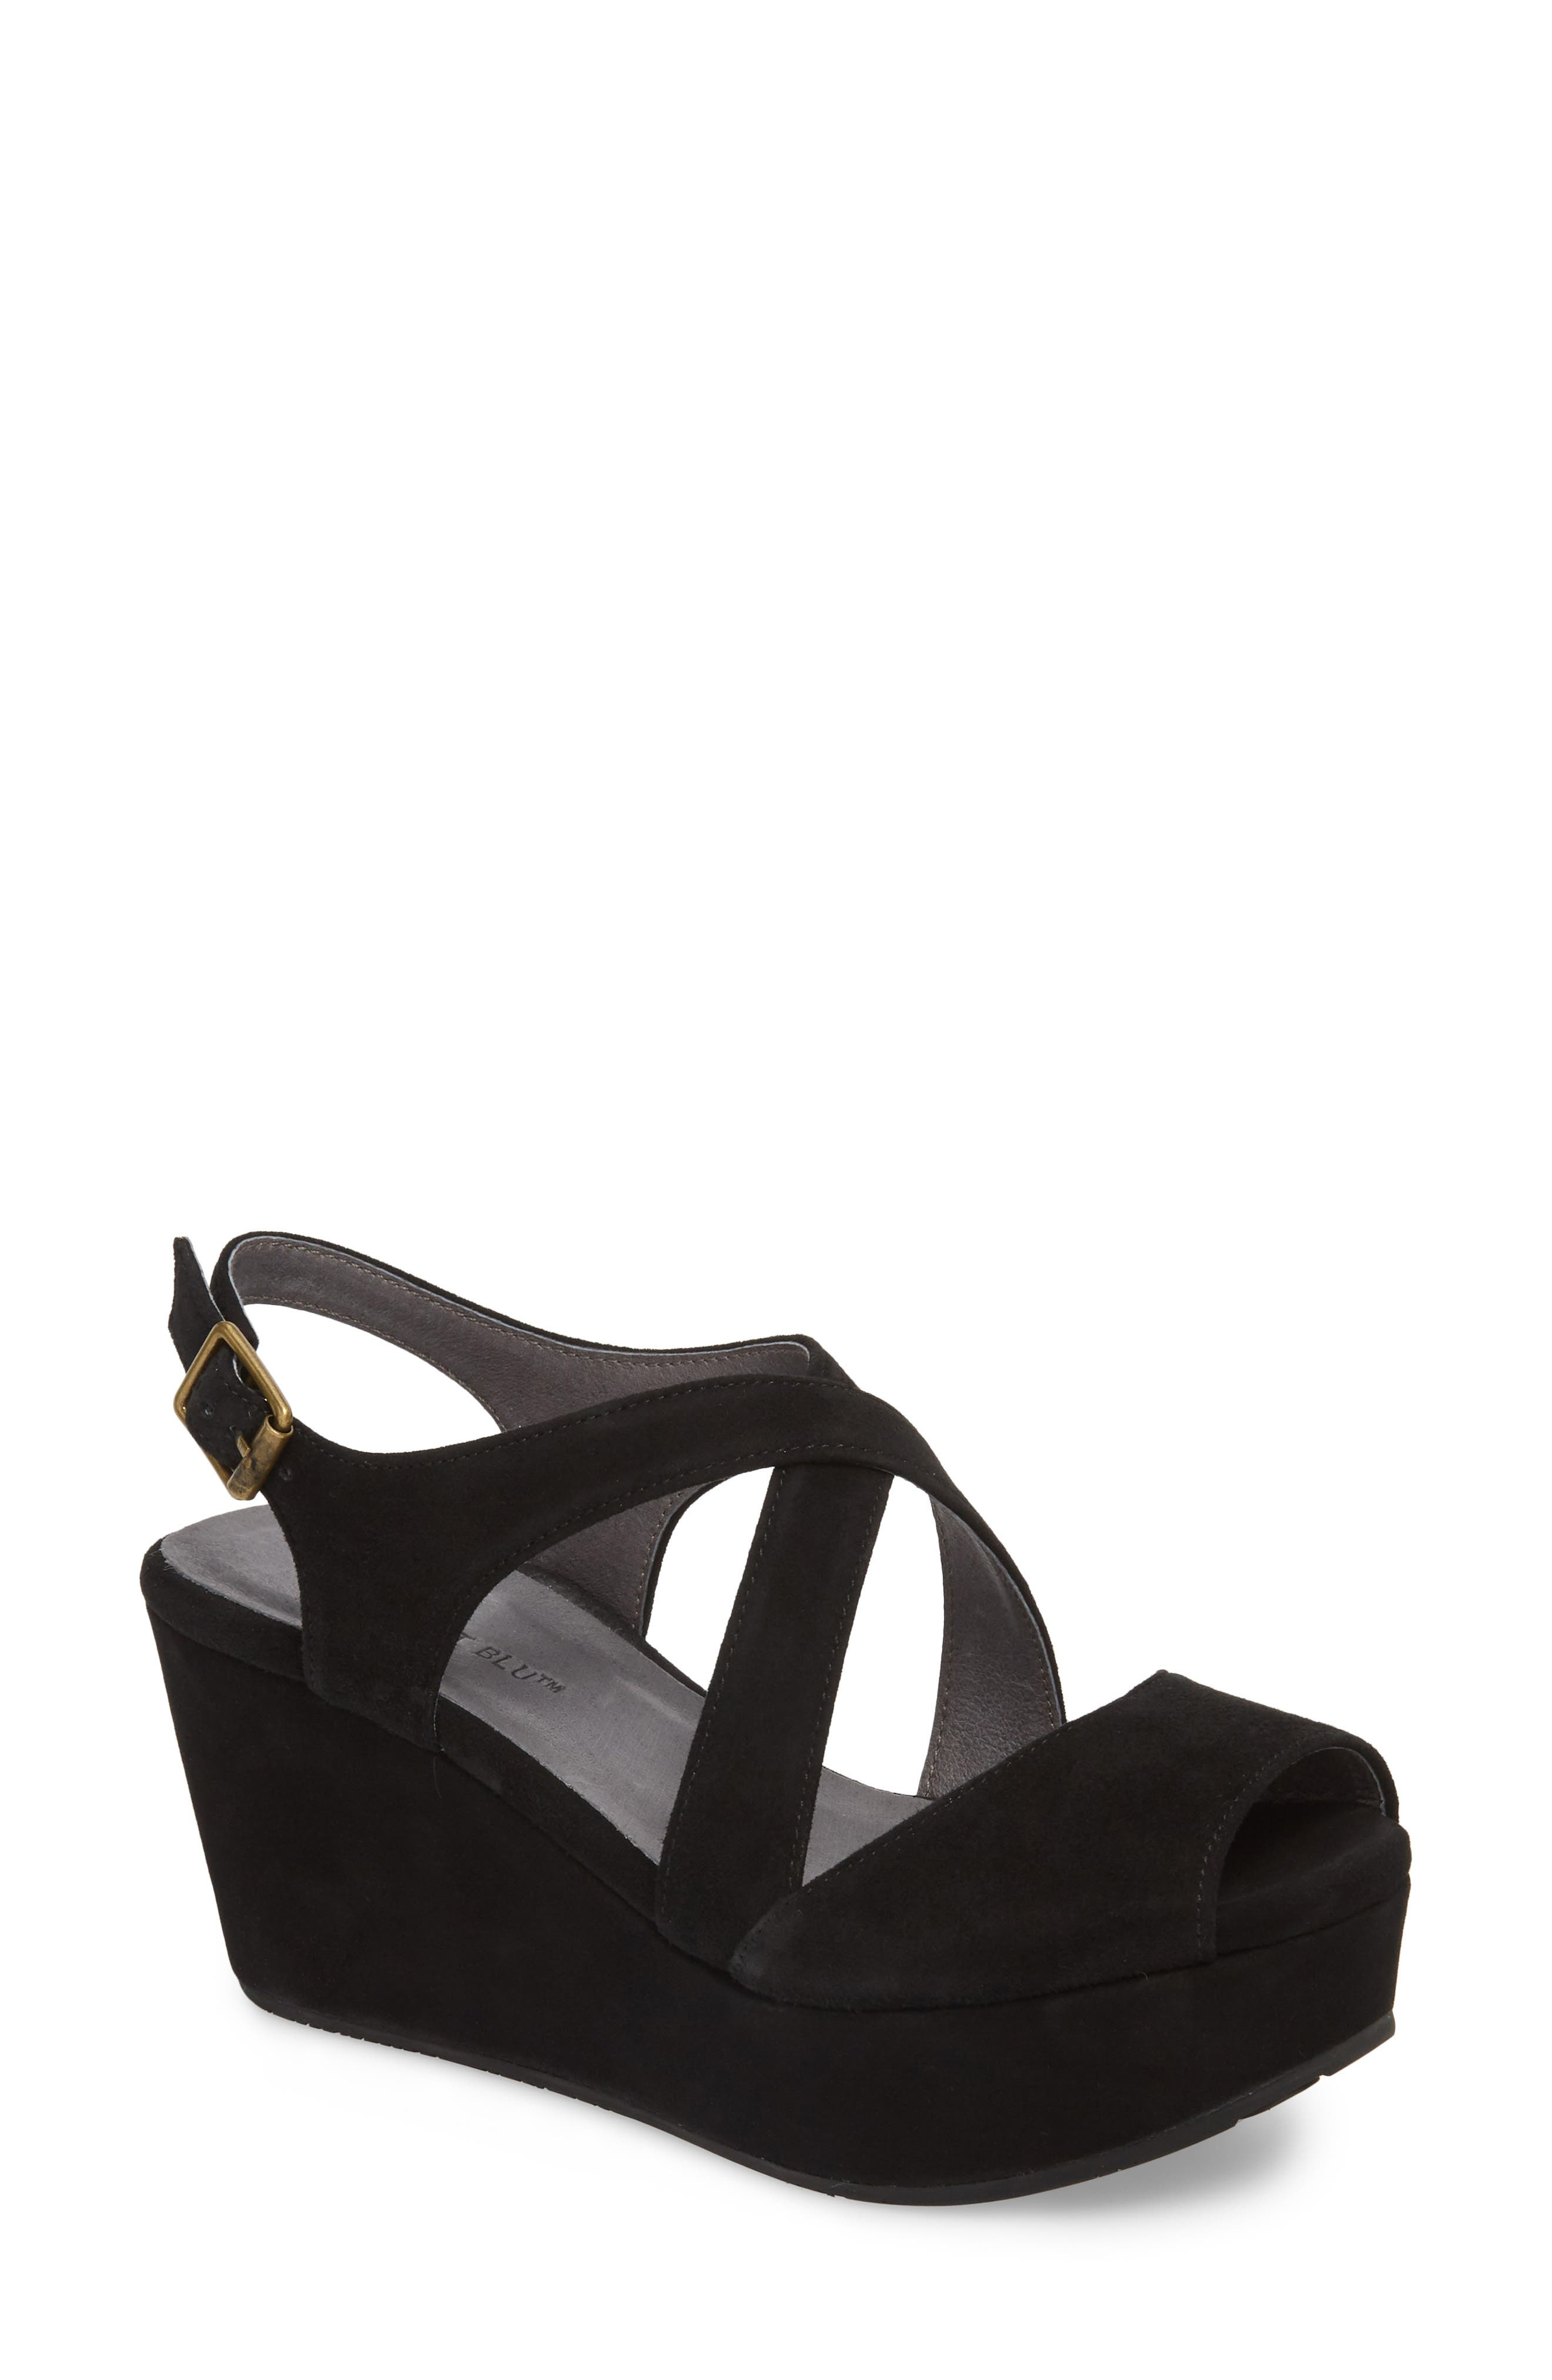 Winnie Wedge Sandal,                             Main thumbnail 1, color,                             BLACK SUEDE